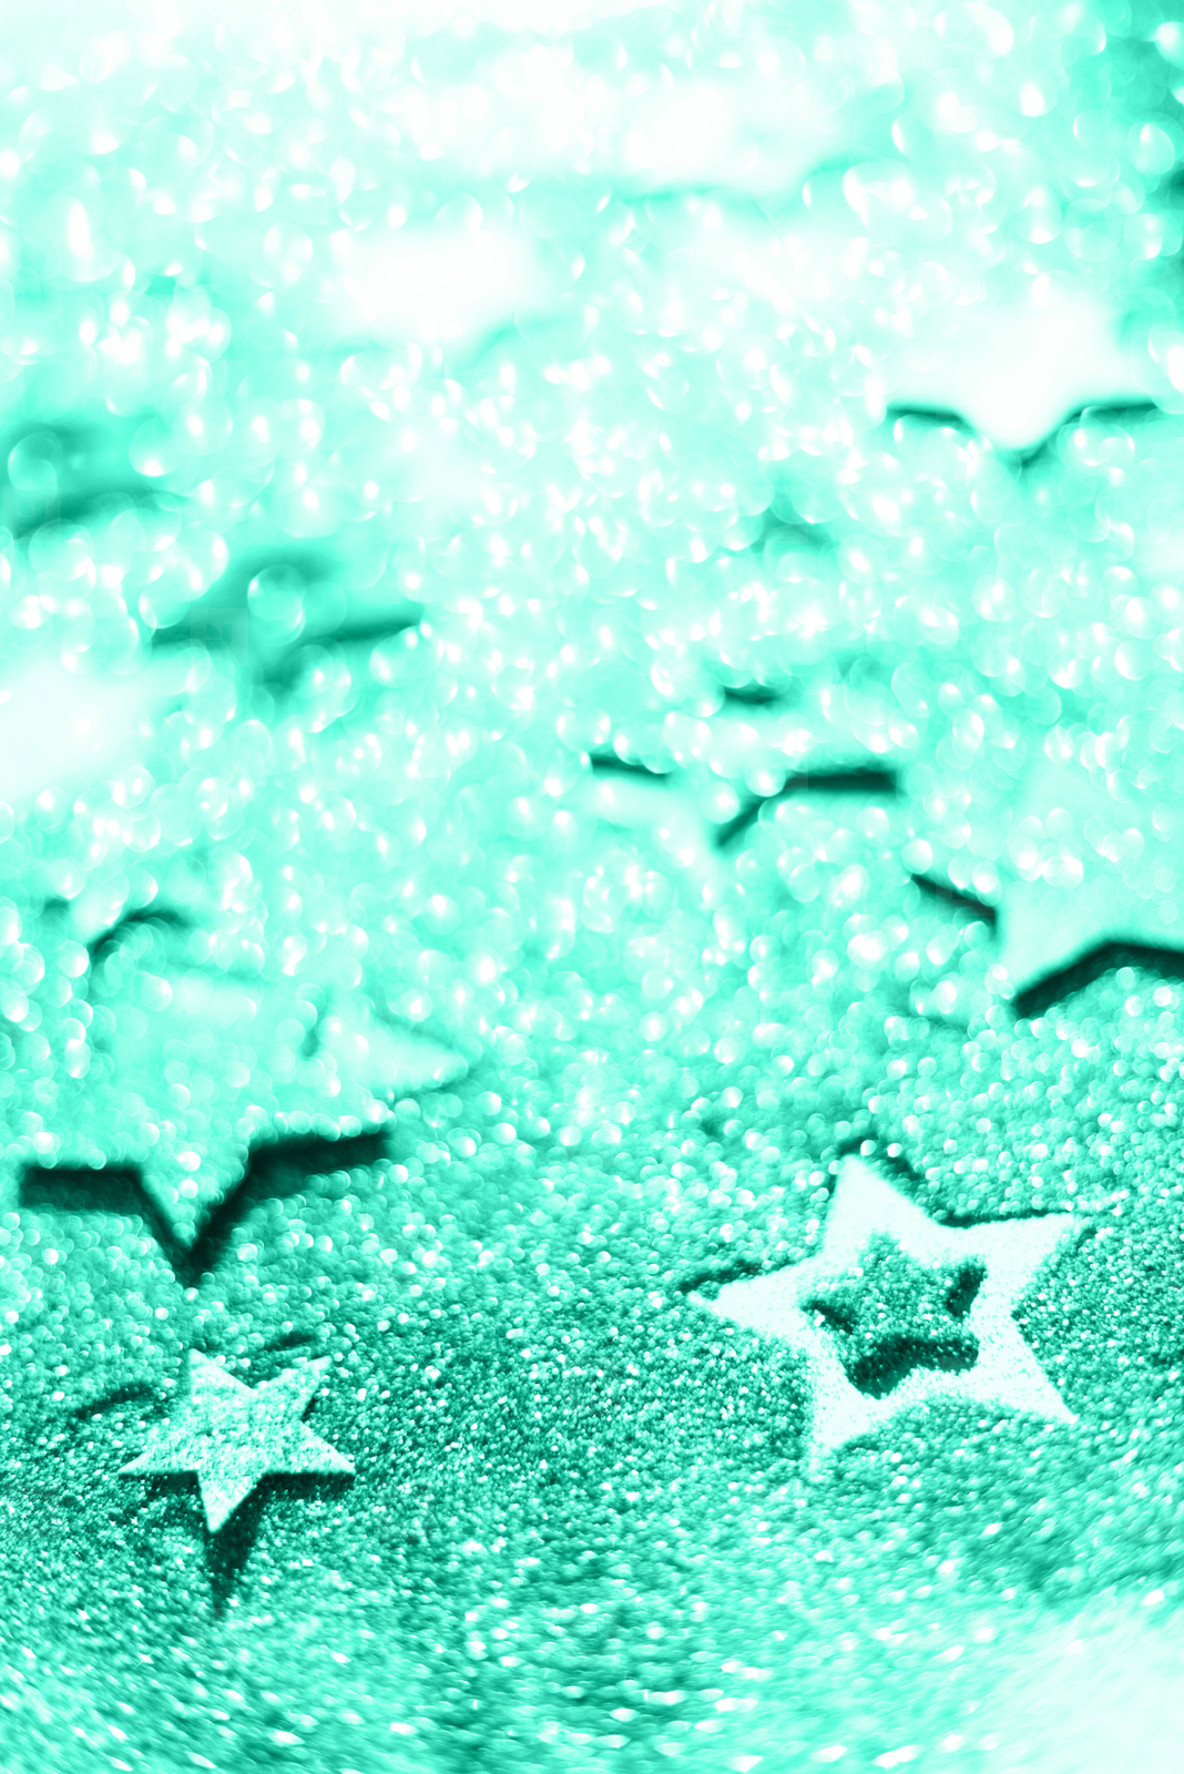 Christmas celebration  Abstract background for new year party  Patter of gold stars with lights  bokeh  Trendy green and turquoise color  Glitter stars in mint color